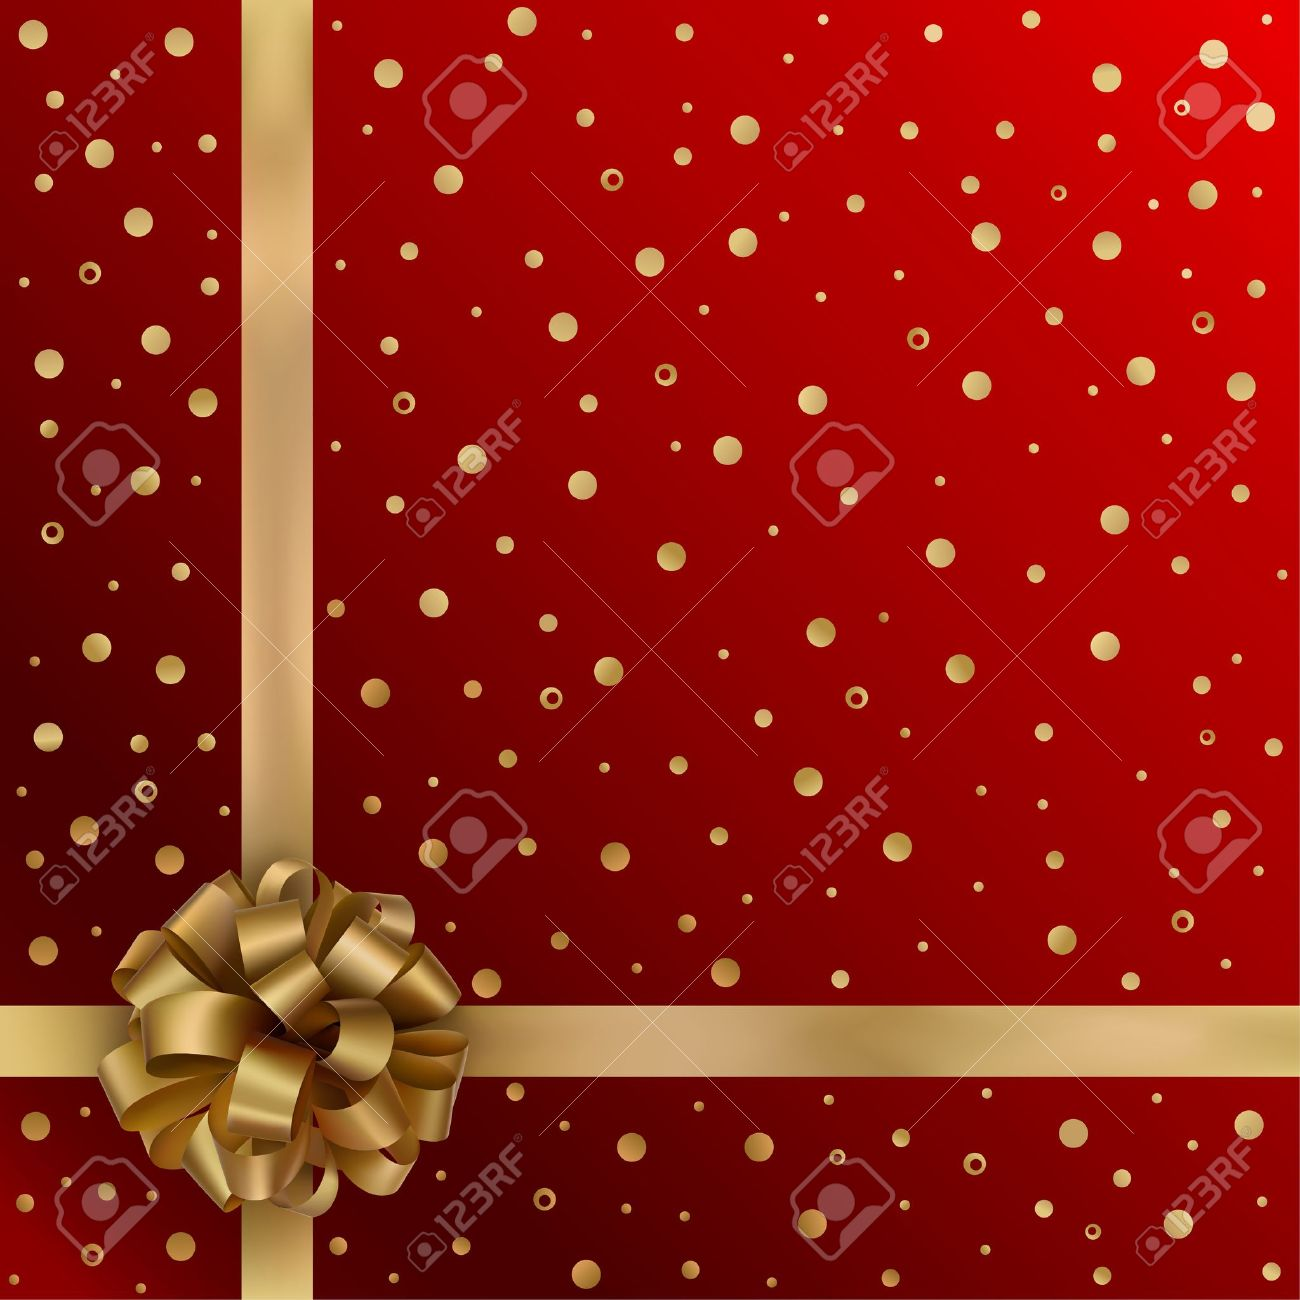 Gold festive ribbon with bow on red background - 11571269